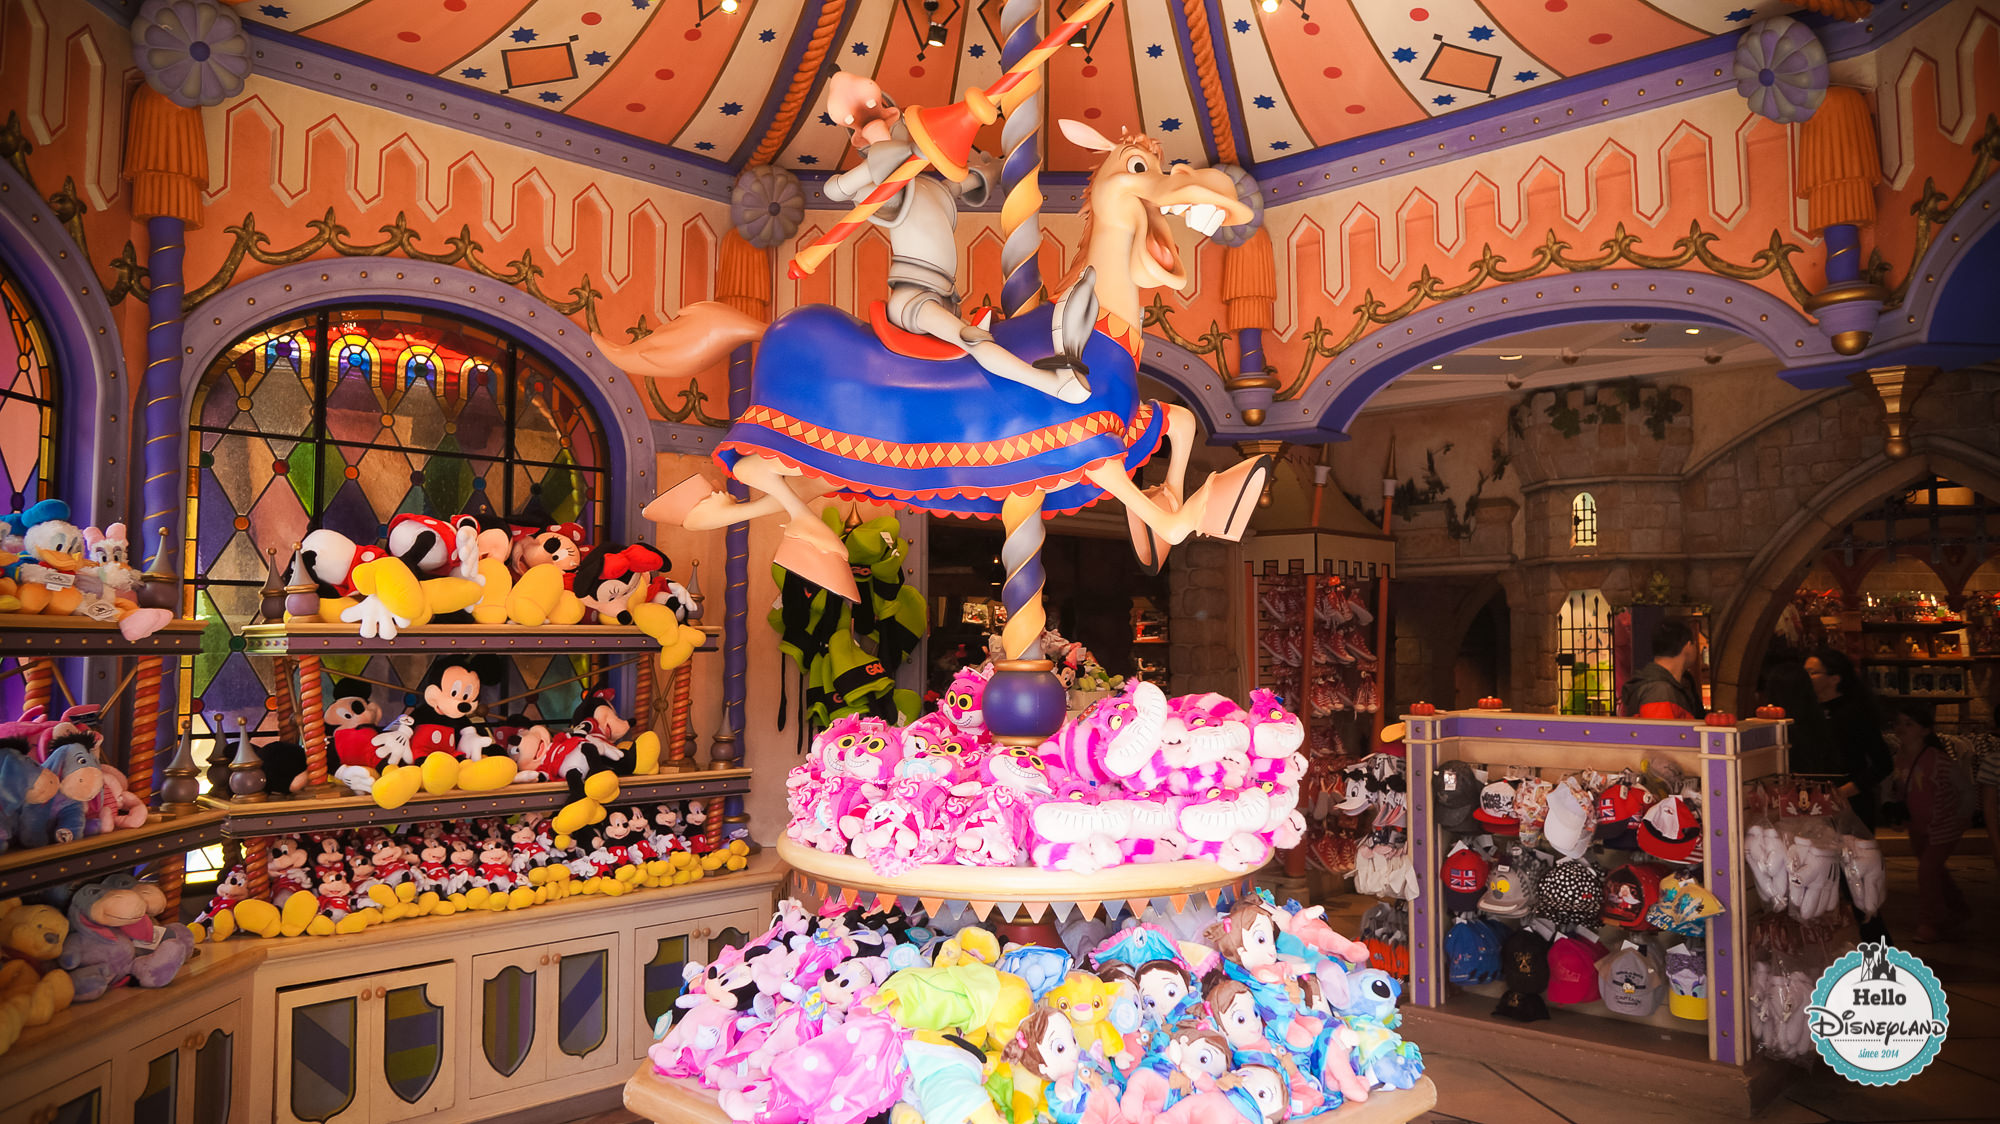 hello disneyland le blog n 1 sur disneyland paris la m nagerie du royaume. Black Bedroom Furniture Sets. Home Design Ideas